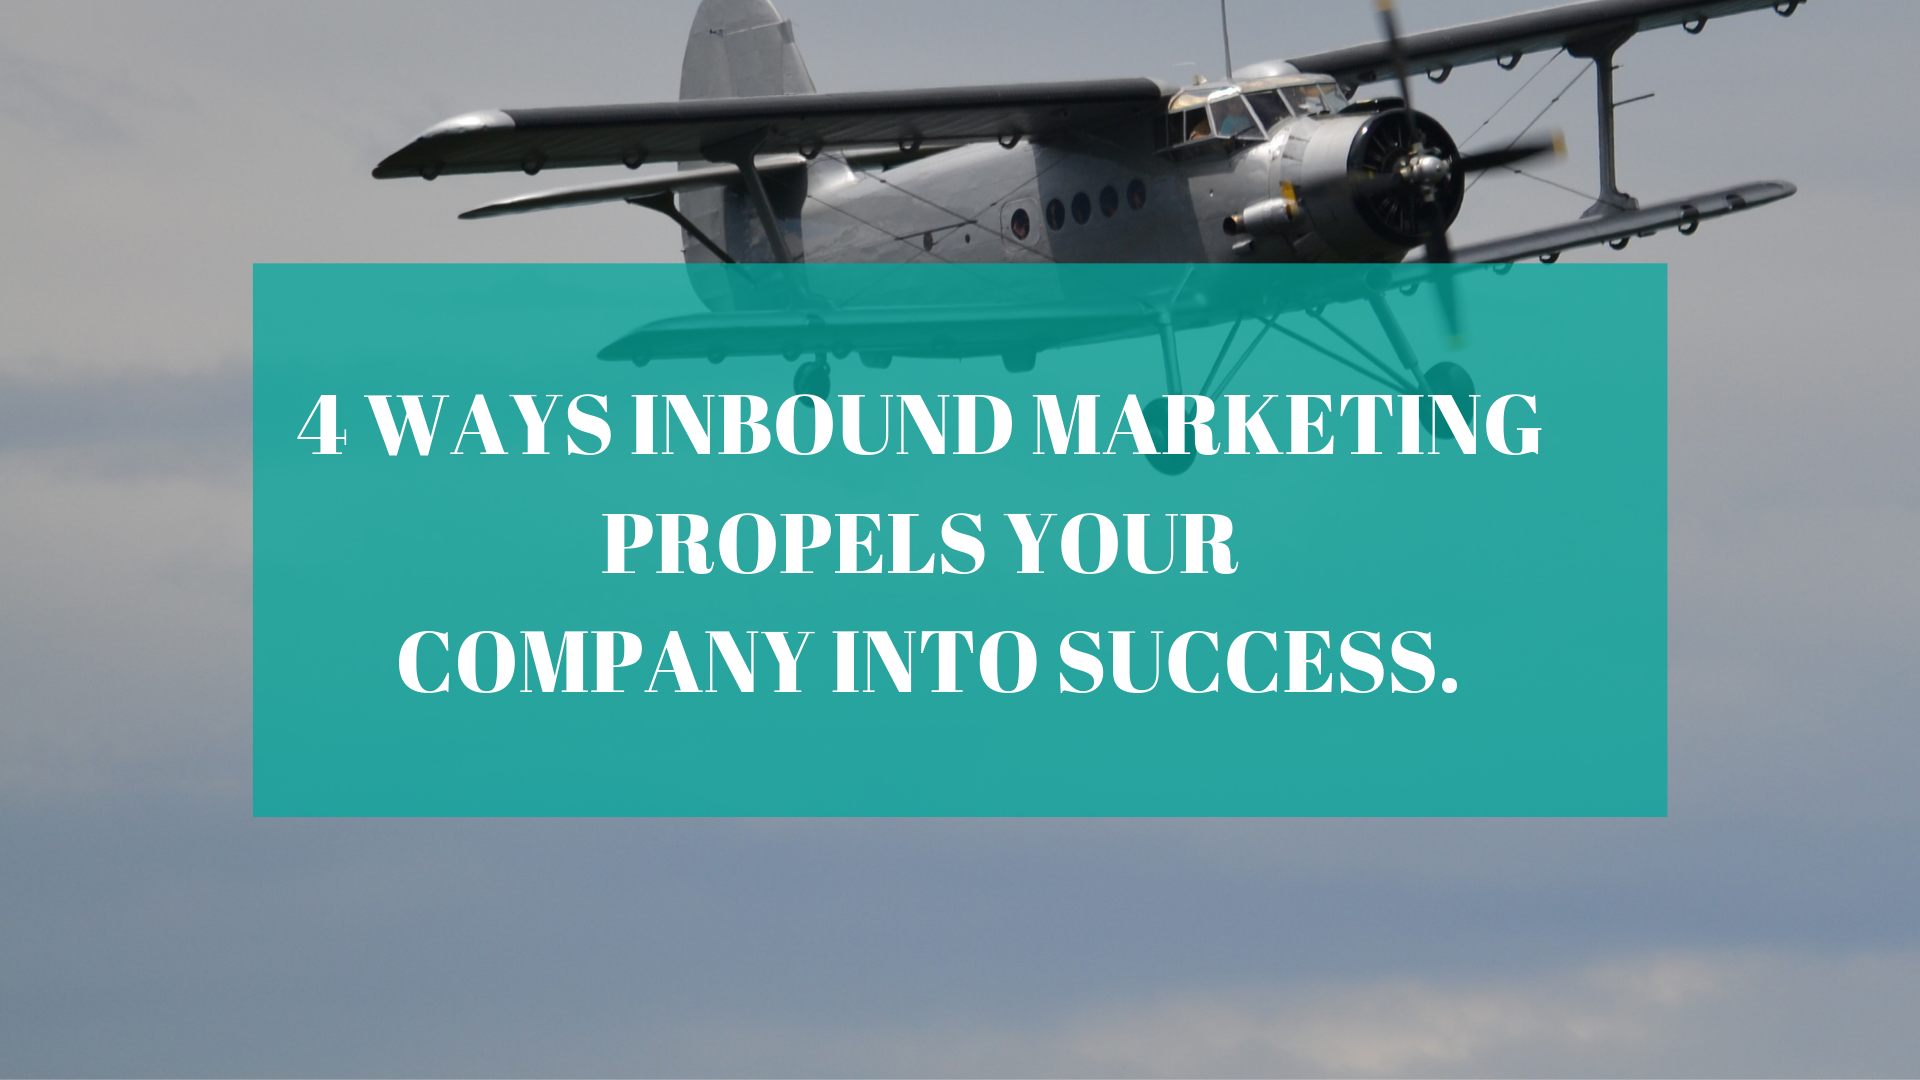 4 Ways Inbound Marketing Propels Your Company into Success.